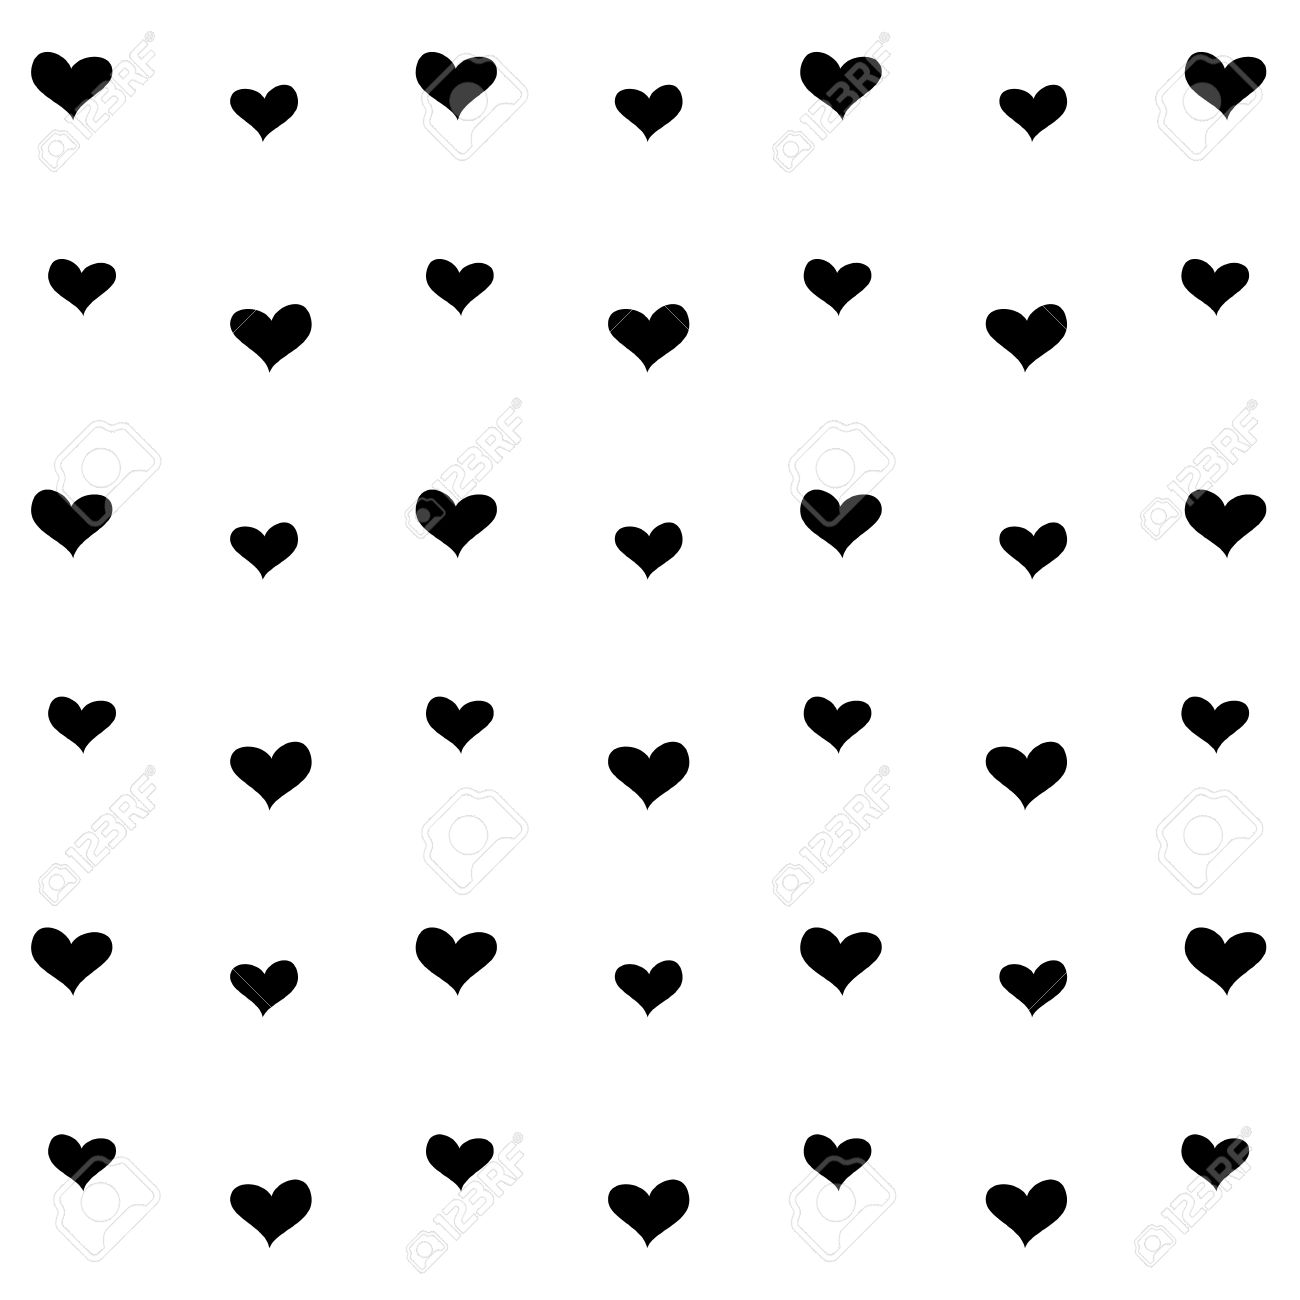 Hearts Images Black And White